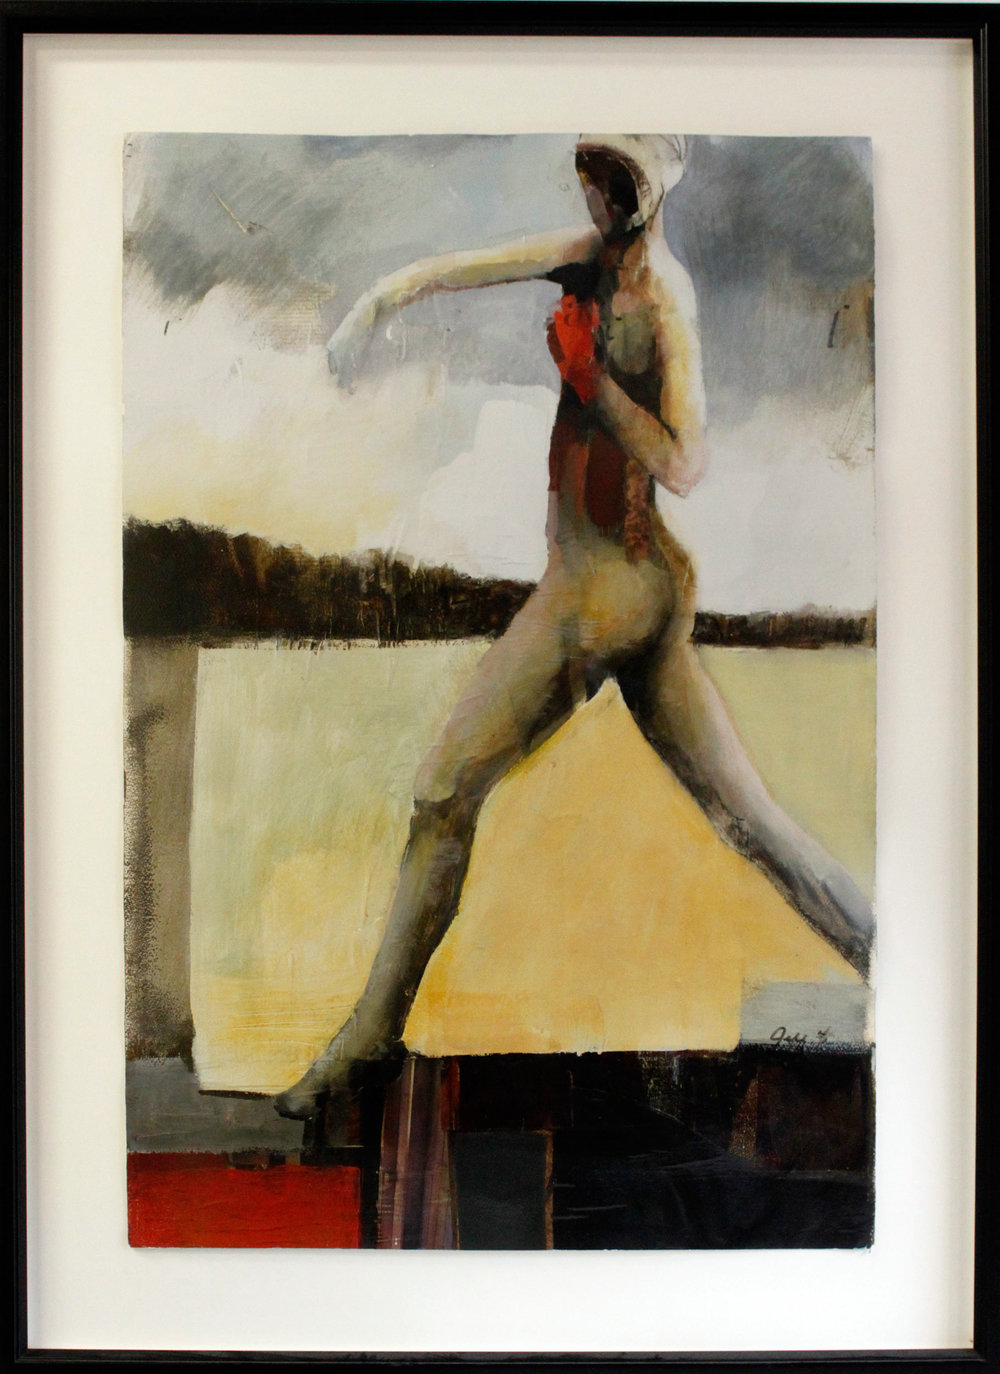 LANGE_Figurative_38x25.5-47.5x34.5-FR_mm-on-paper.jpg